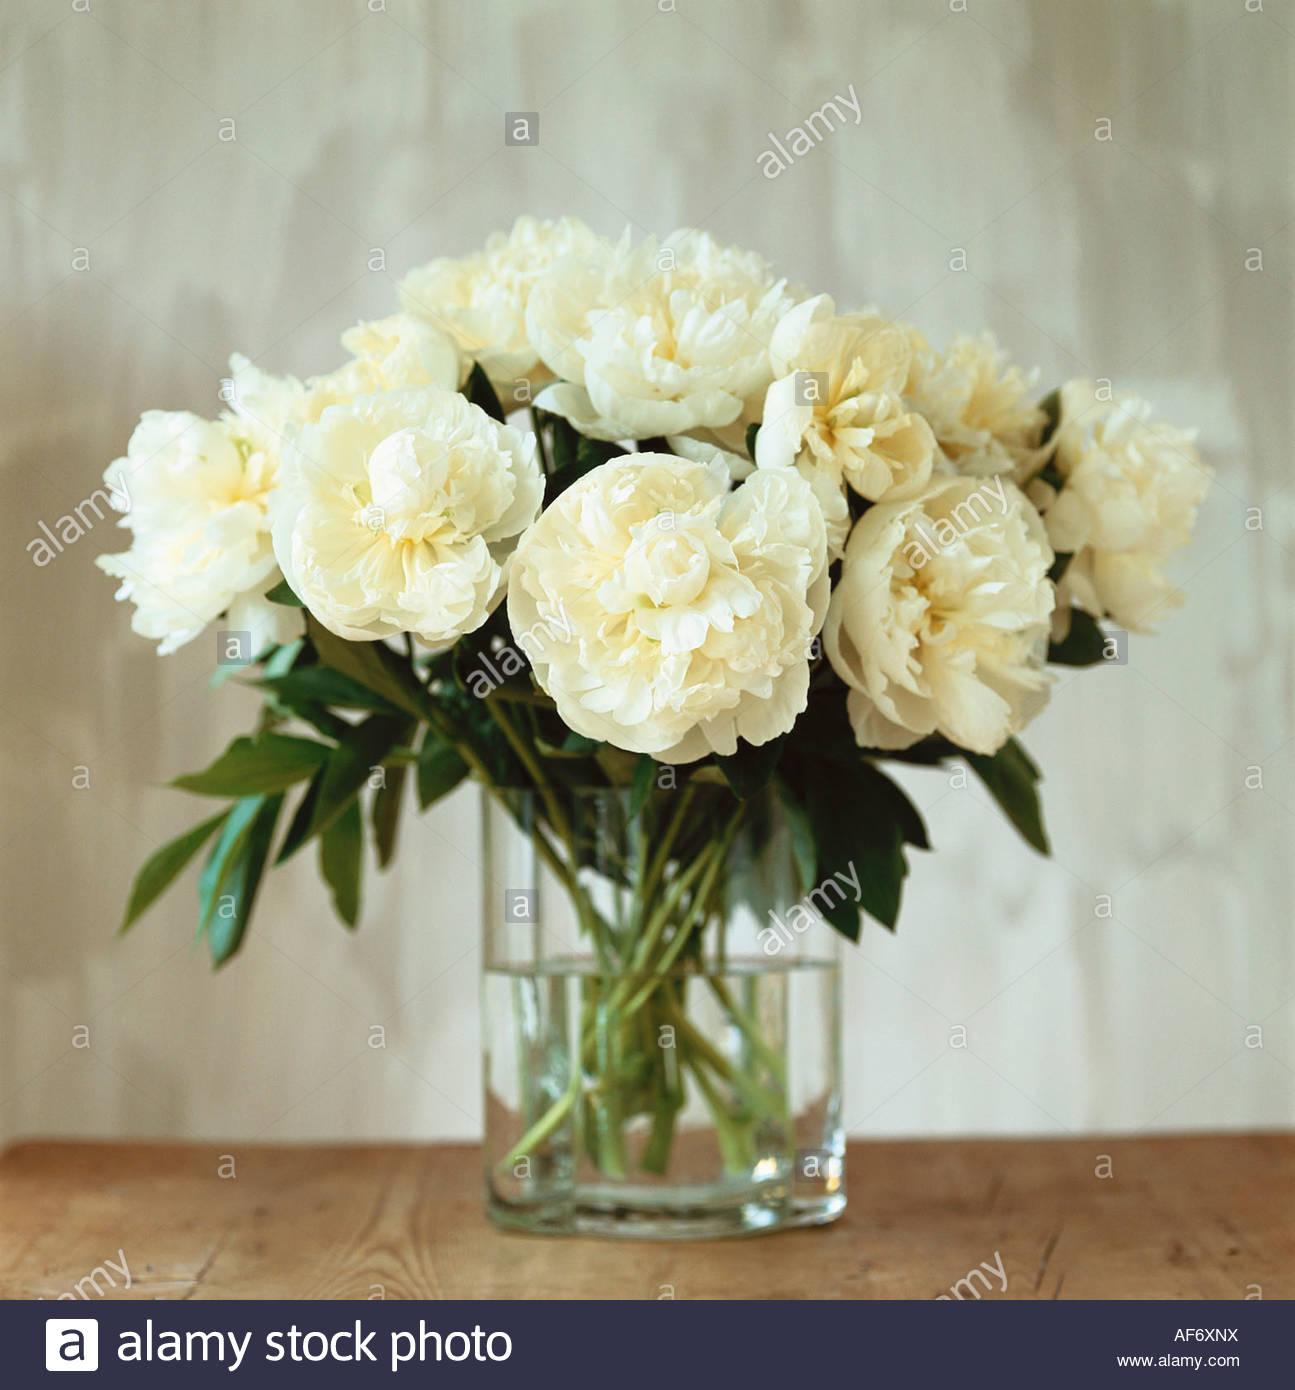 White peonies in a vase stock photo royalty free image 13851301 white peonies in a vase reviewsmspy